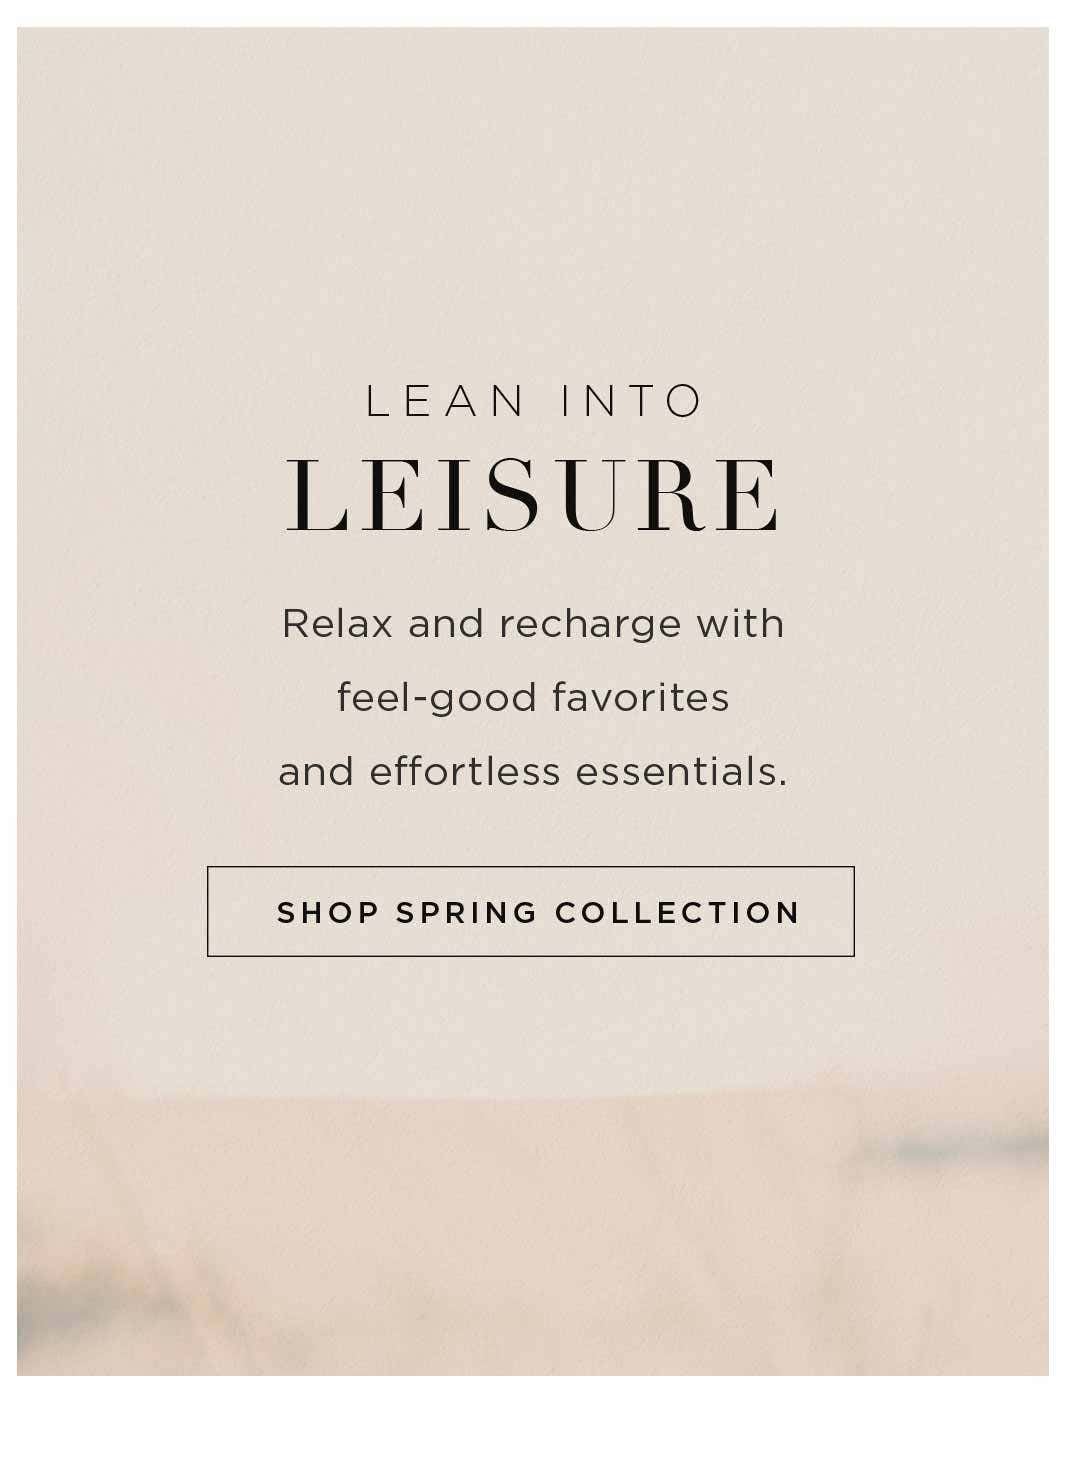 Lean Into Leisure - Relax and recharge with feel-good favorites and effortless essentials - Shop Spring Essentials